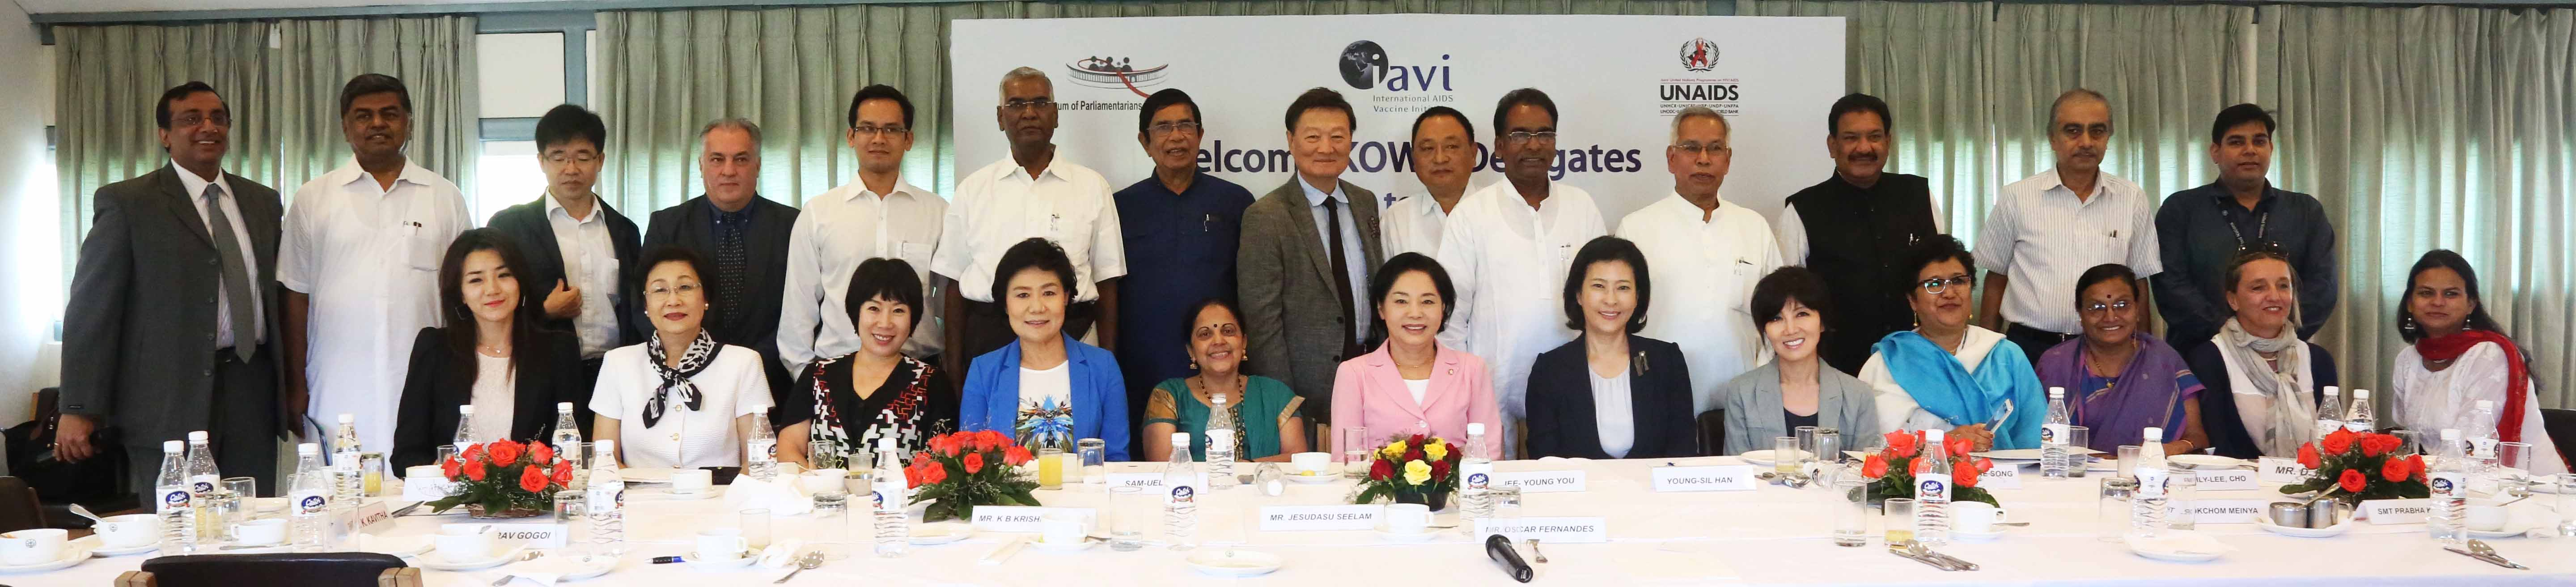 Members of Korean Women against AIDS (KOWA) met with senior government officials and scientists on their first official visit to India coordinated by IAVI and UNAIDS.